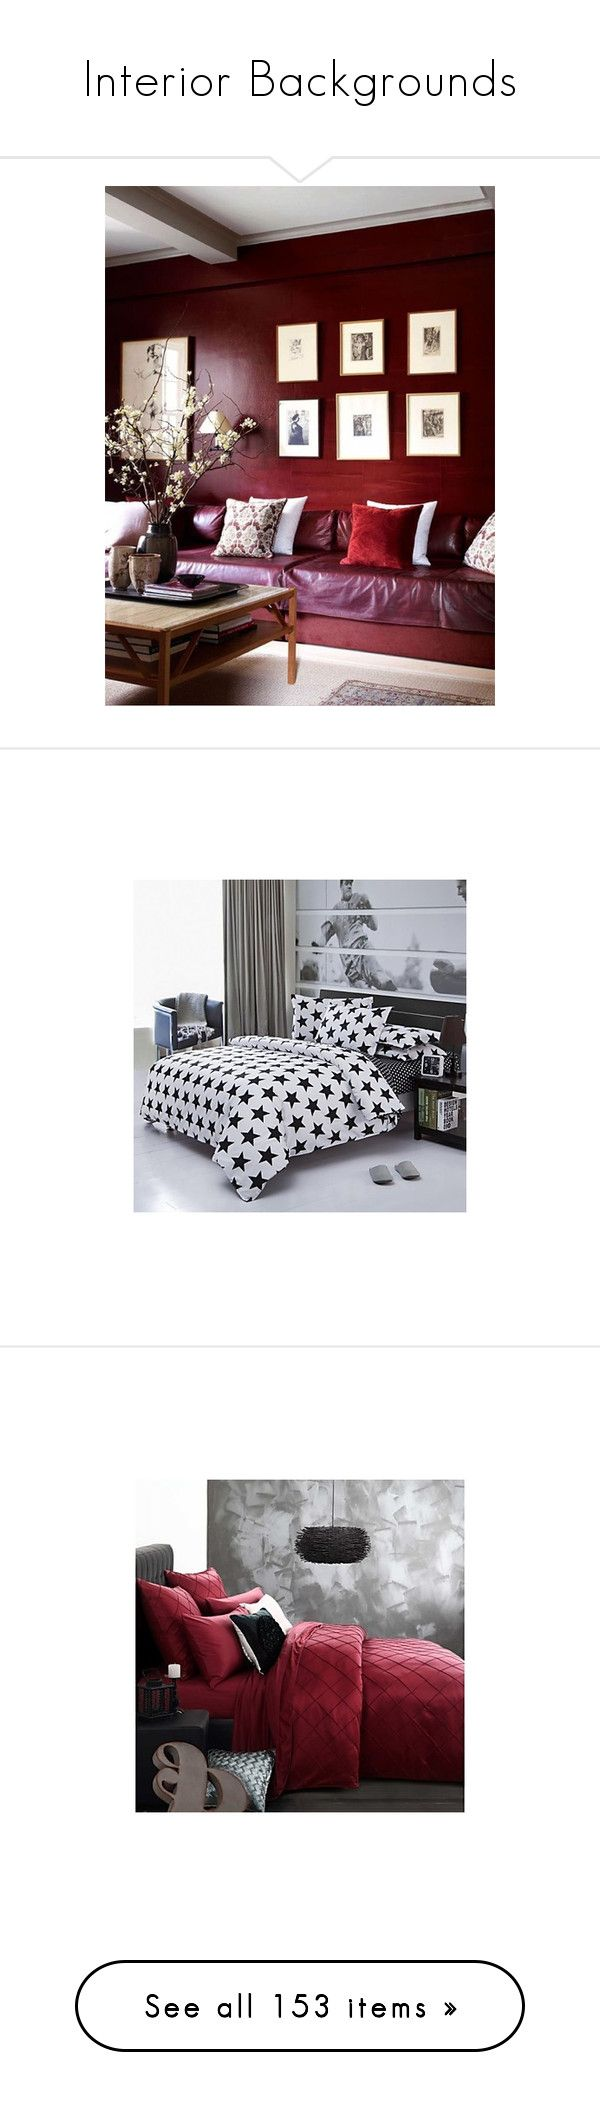 """""""Interior Backgrounds"""" by noconfessions ❤ liked on Polyvore featuring home, bed & bath, bedding, contemporary, duvet covers, black and white twin bedding, black and white king size bedding, king bedding, queen bedding and king size bedding sets"""